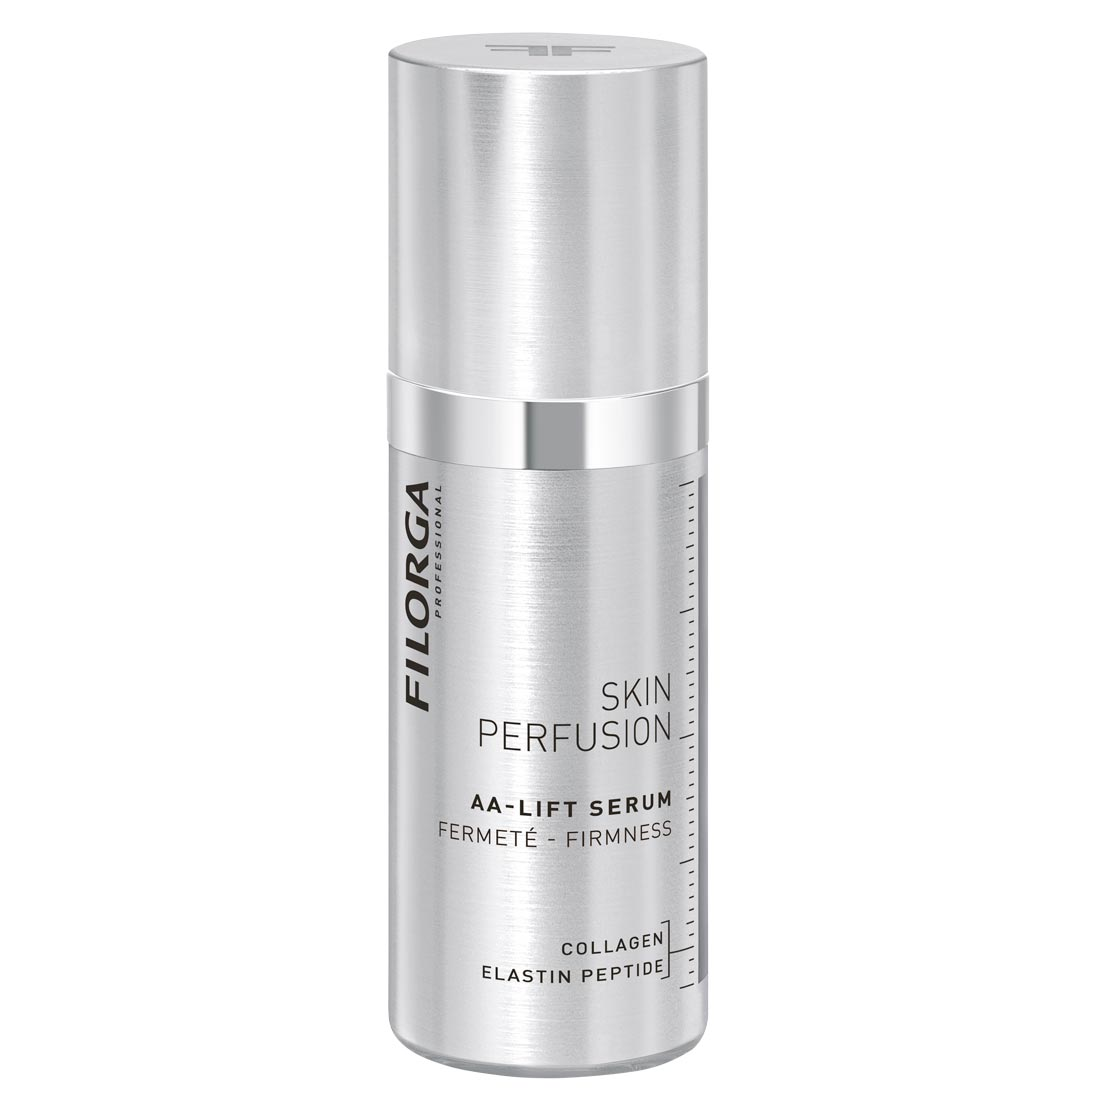 SKIN PERFUSION AA-LIFT SERUM 1